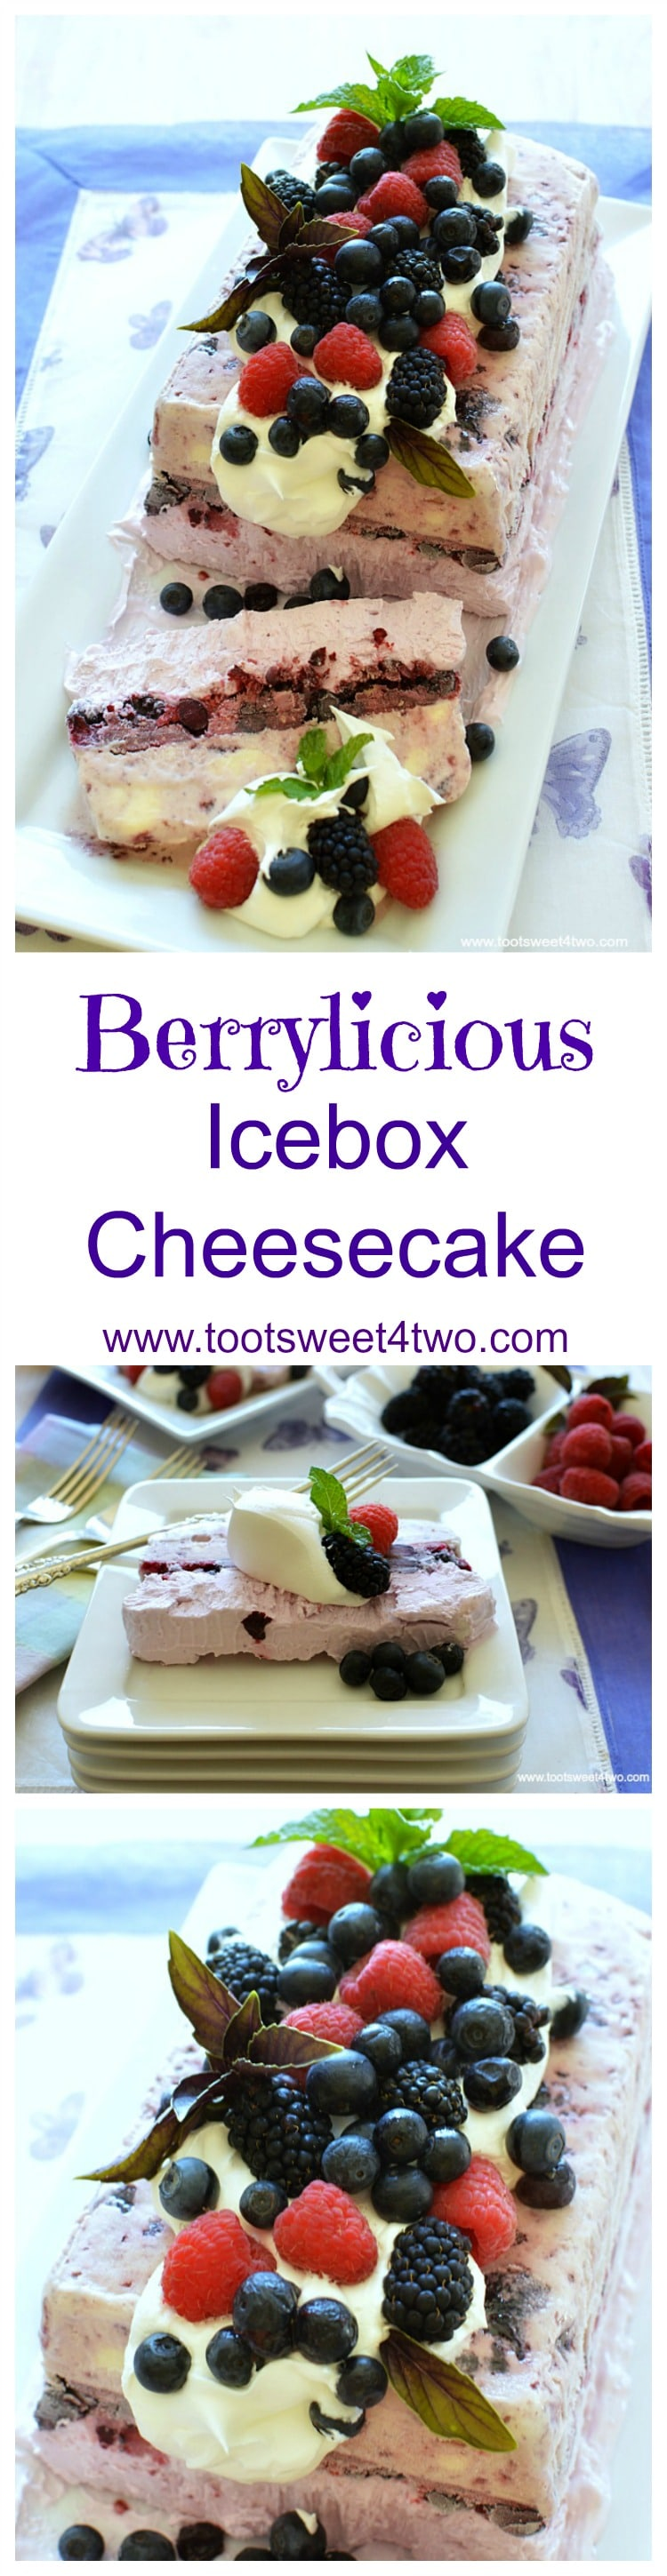 "Looking for unique cheesecake recipes? Look no further! Berrylicious Ice Box Cheesecake is an easy, frozen, no bake dessert that combines an easy-to-make blackberry cheesecake layer with a layer of ice cream. Frozen for hours or overnight, unmold this luscious concoction onto a pretty platter, dollop with Cool Whip and then top with fresh blackberries, blueberries, raspberries and sprigs of mint. A spectacular-looking dessert, this delicious recipe will ""wow"" friends and family. 